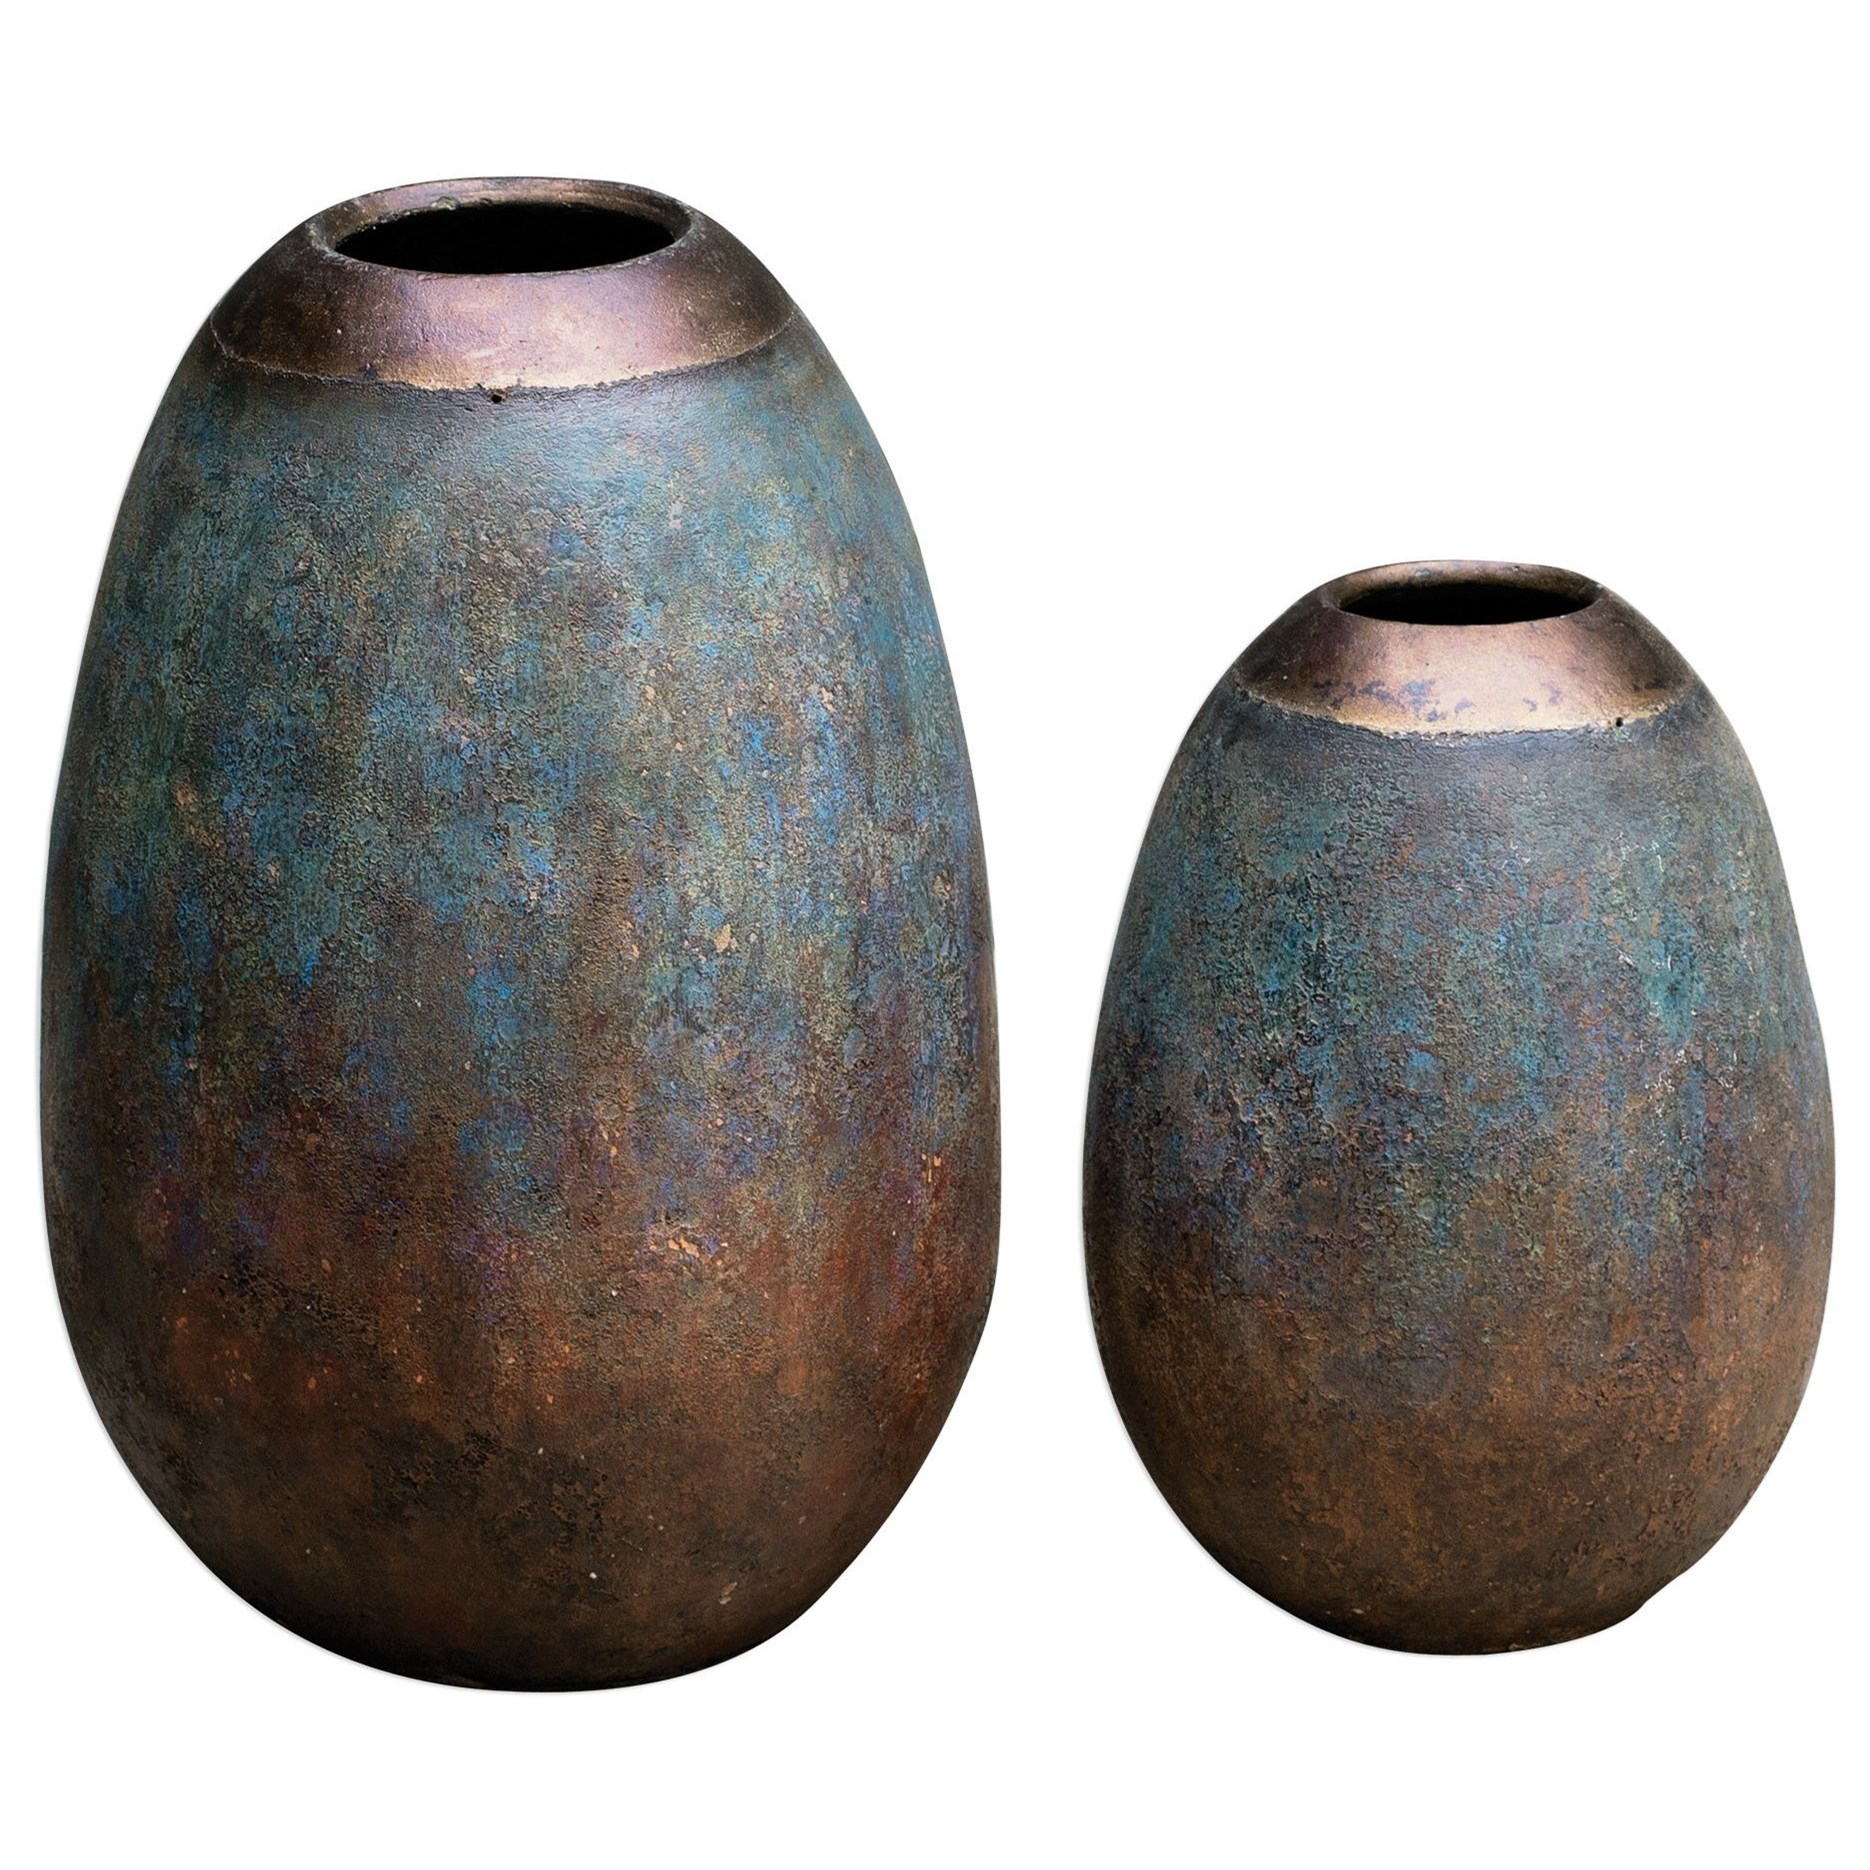 Accessories - Vases and Urns Pavak Etruscan Sky Vases S/2 by Uttermost at Mueller Furniture